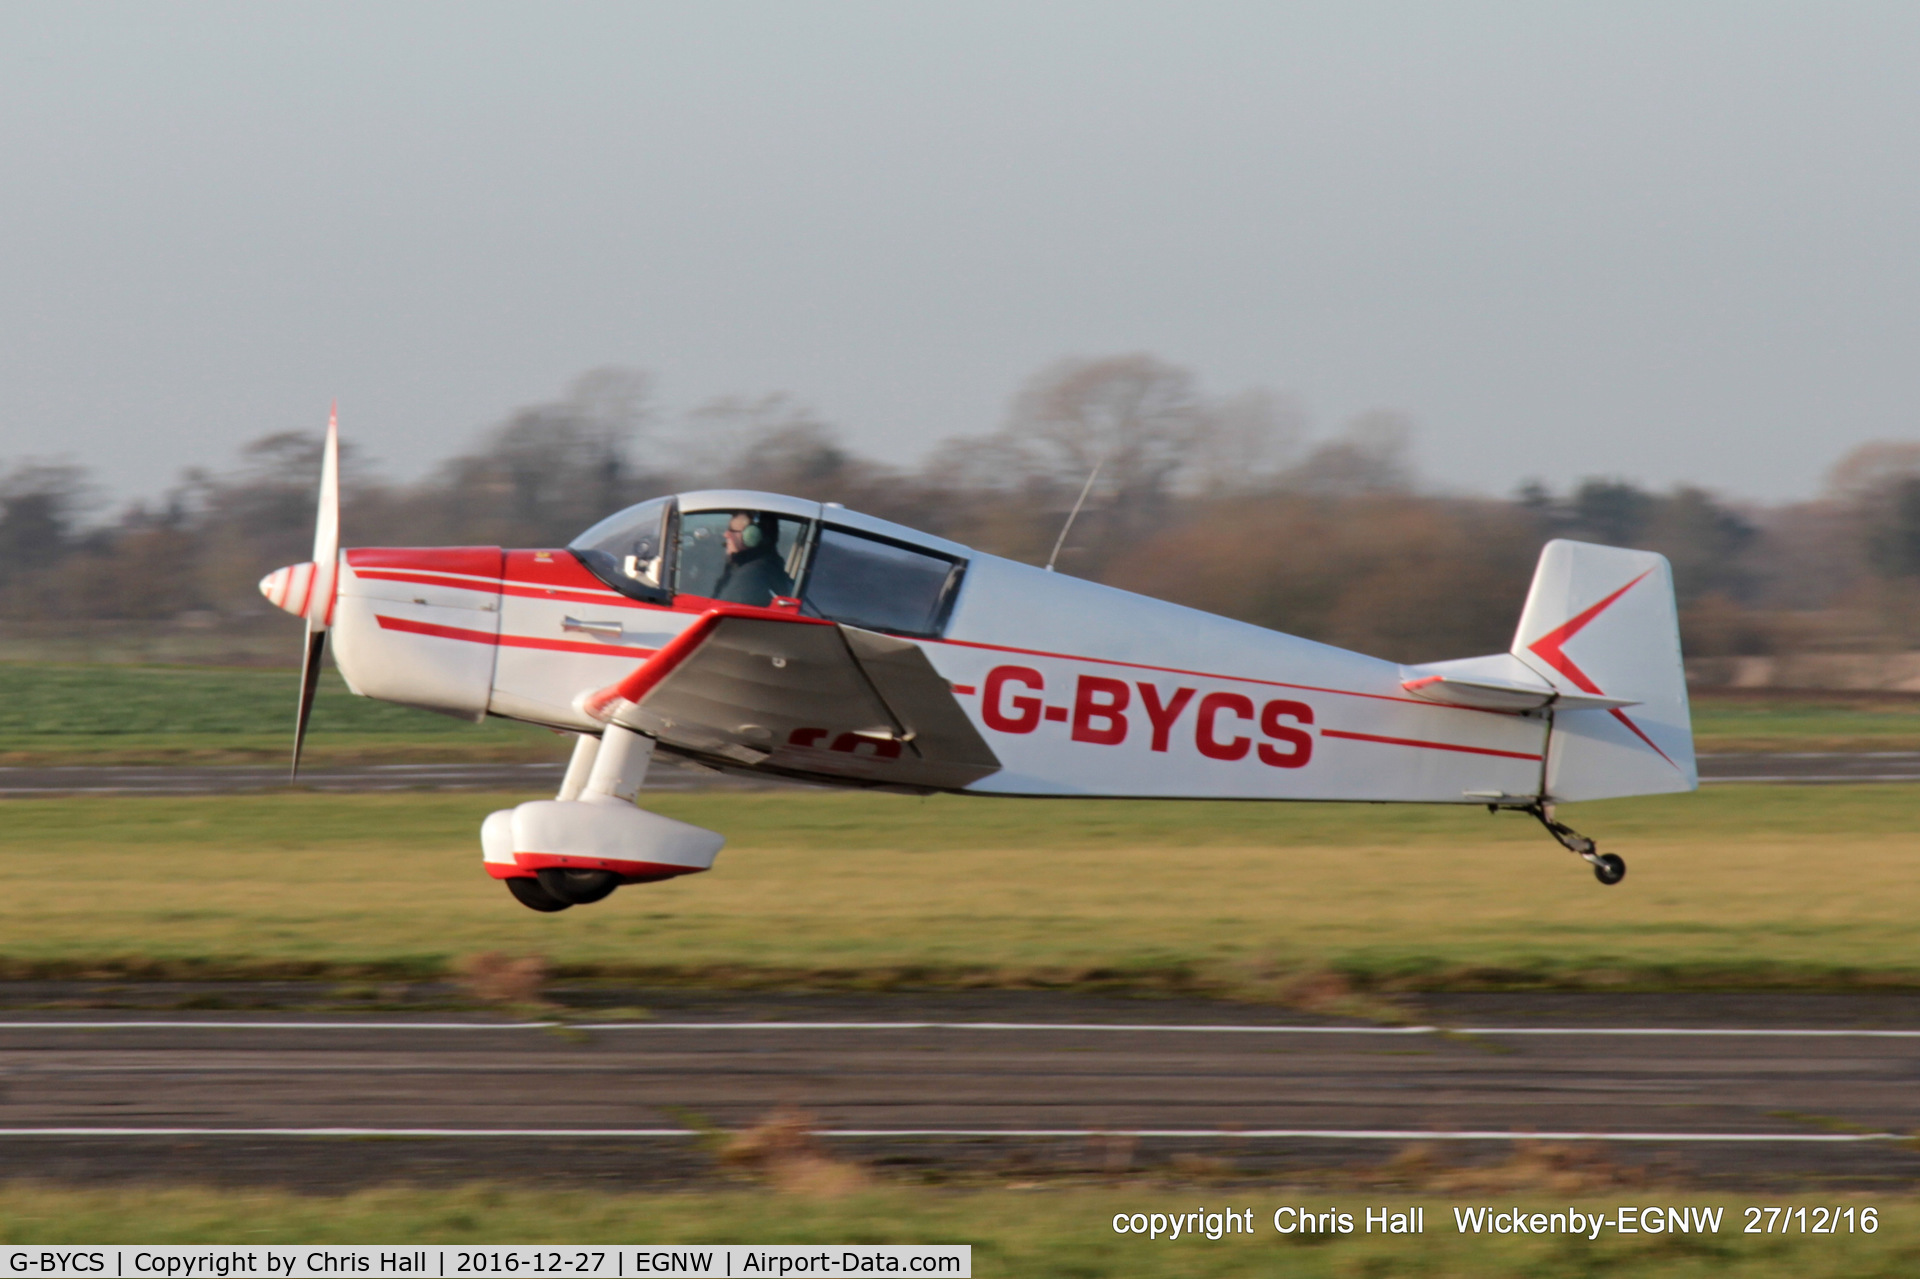 G-BYCS, 1961 CEA Jodel DR-1051 C/N 201, at the Wickenby